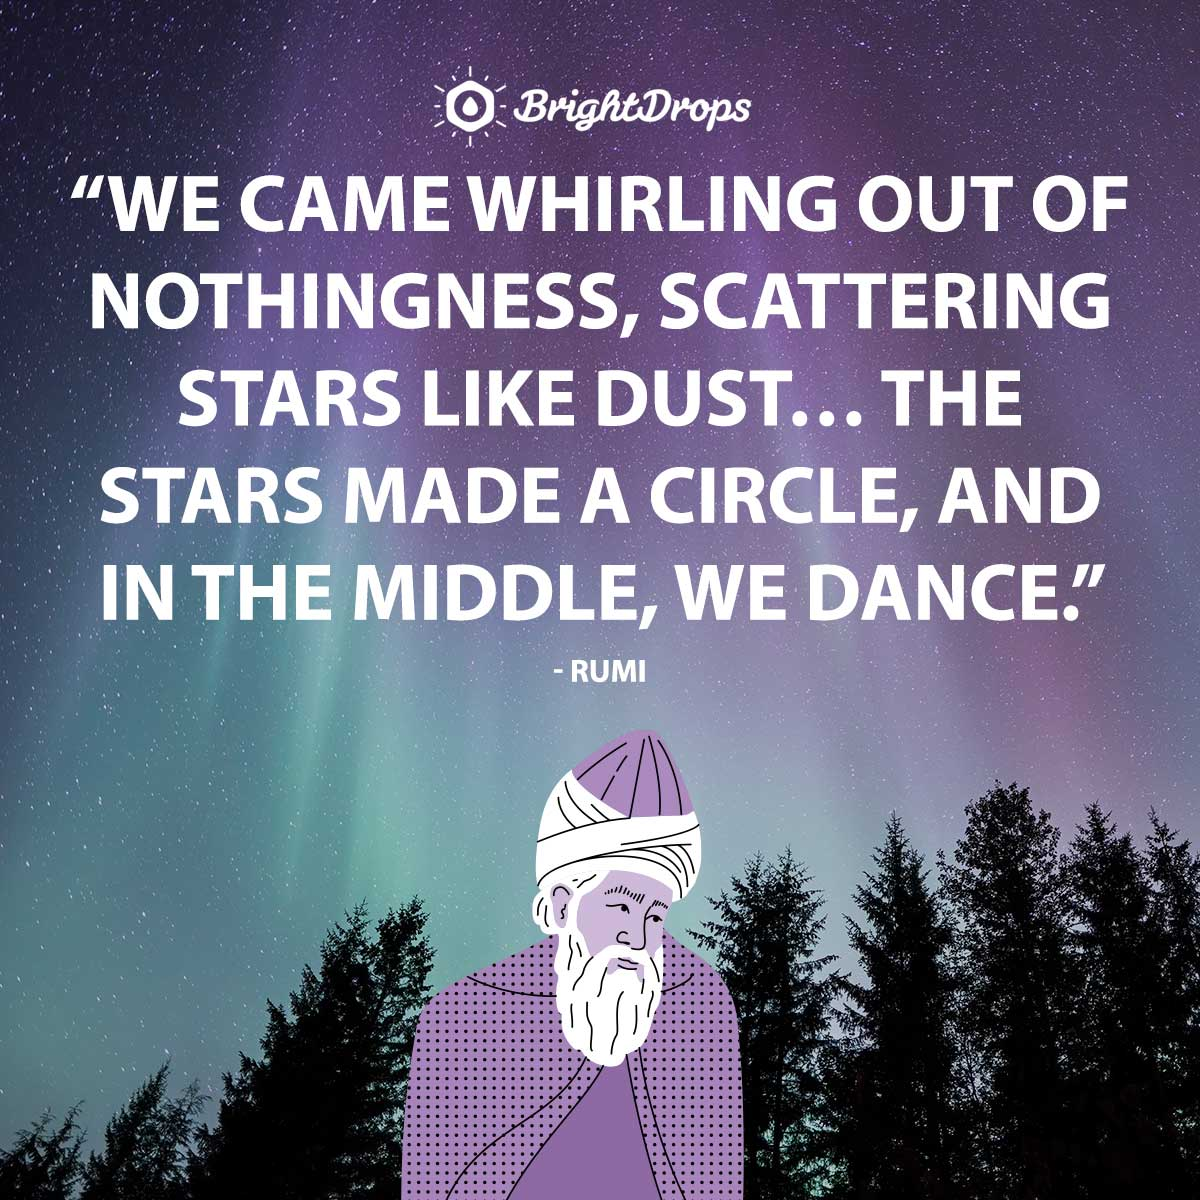 We came whirling out of nothingness, scattering stars like dust… The stars made a circle, and in the middle, we dance. - Rumi